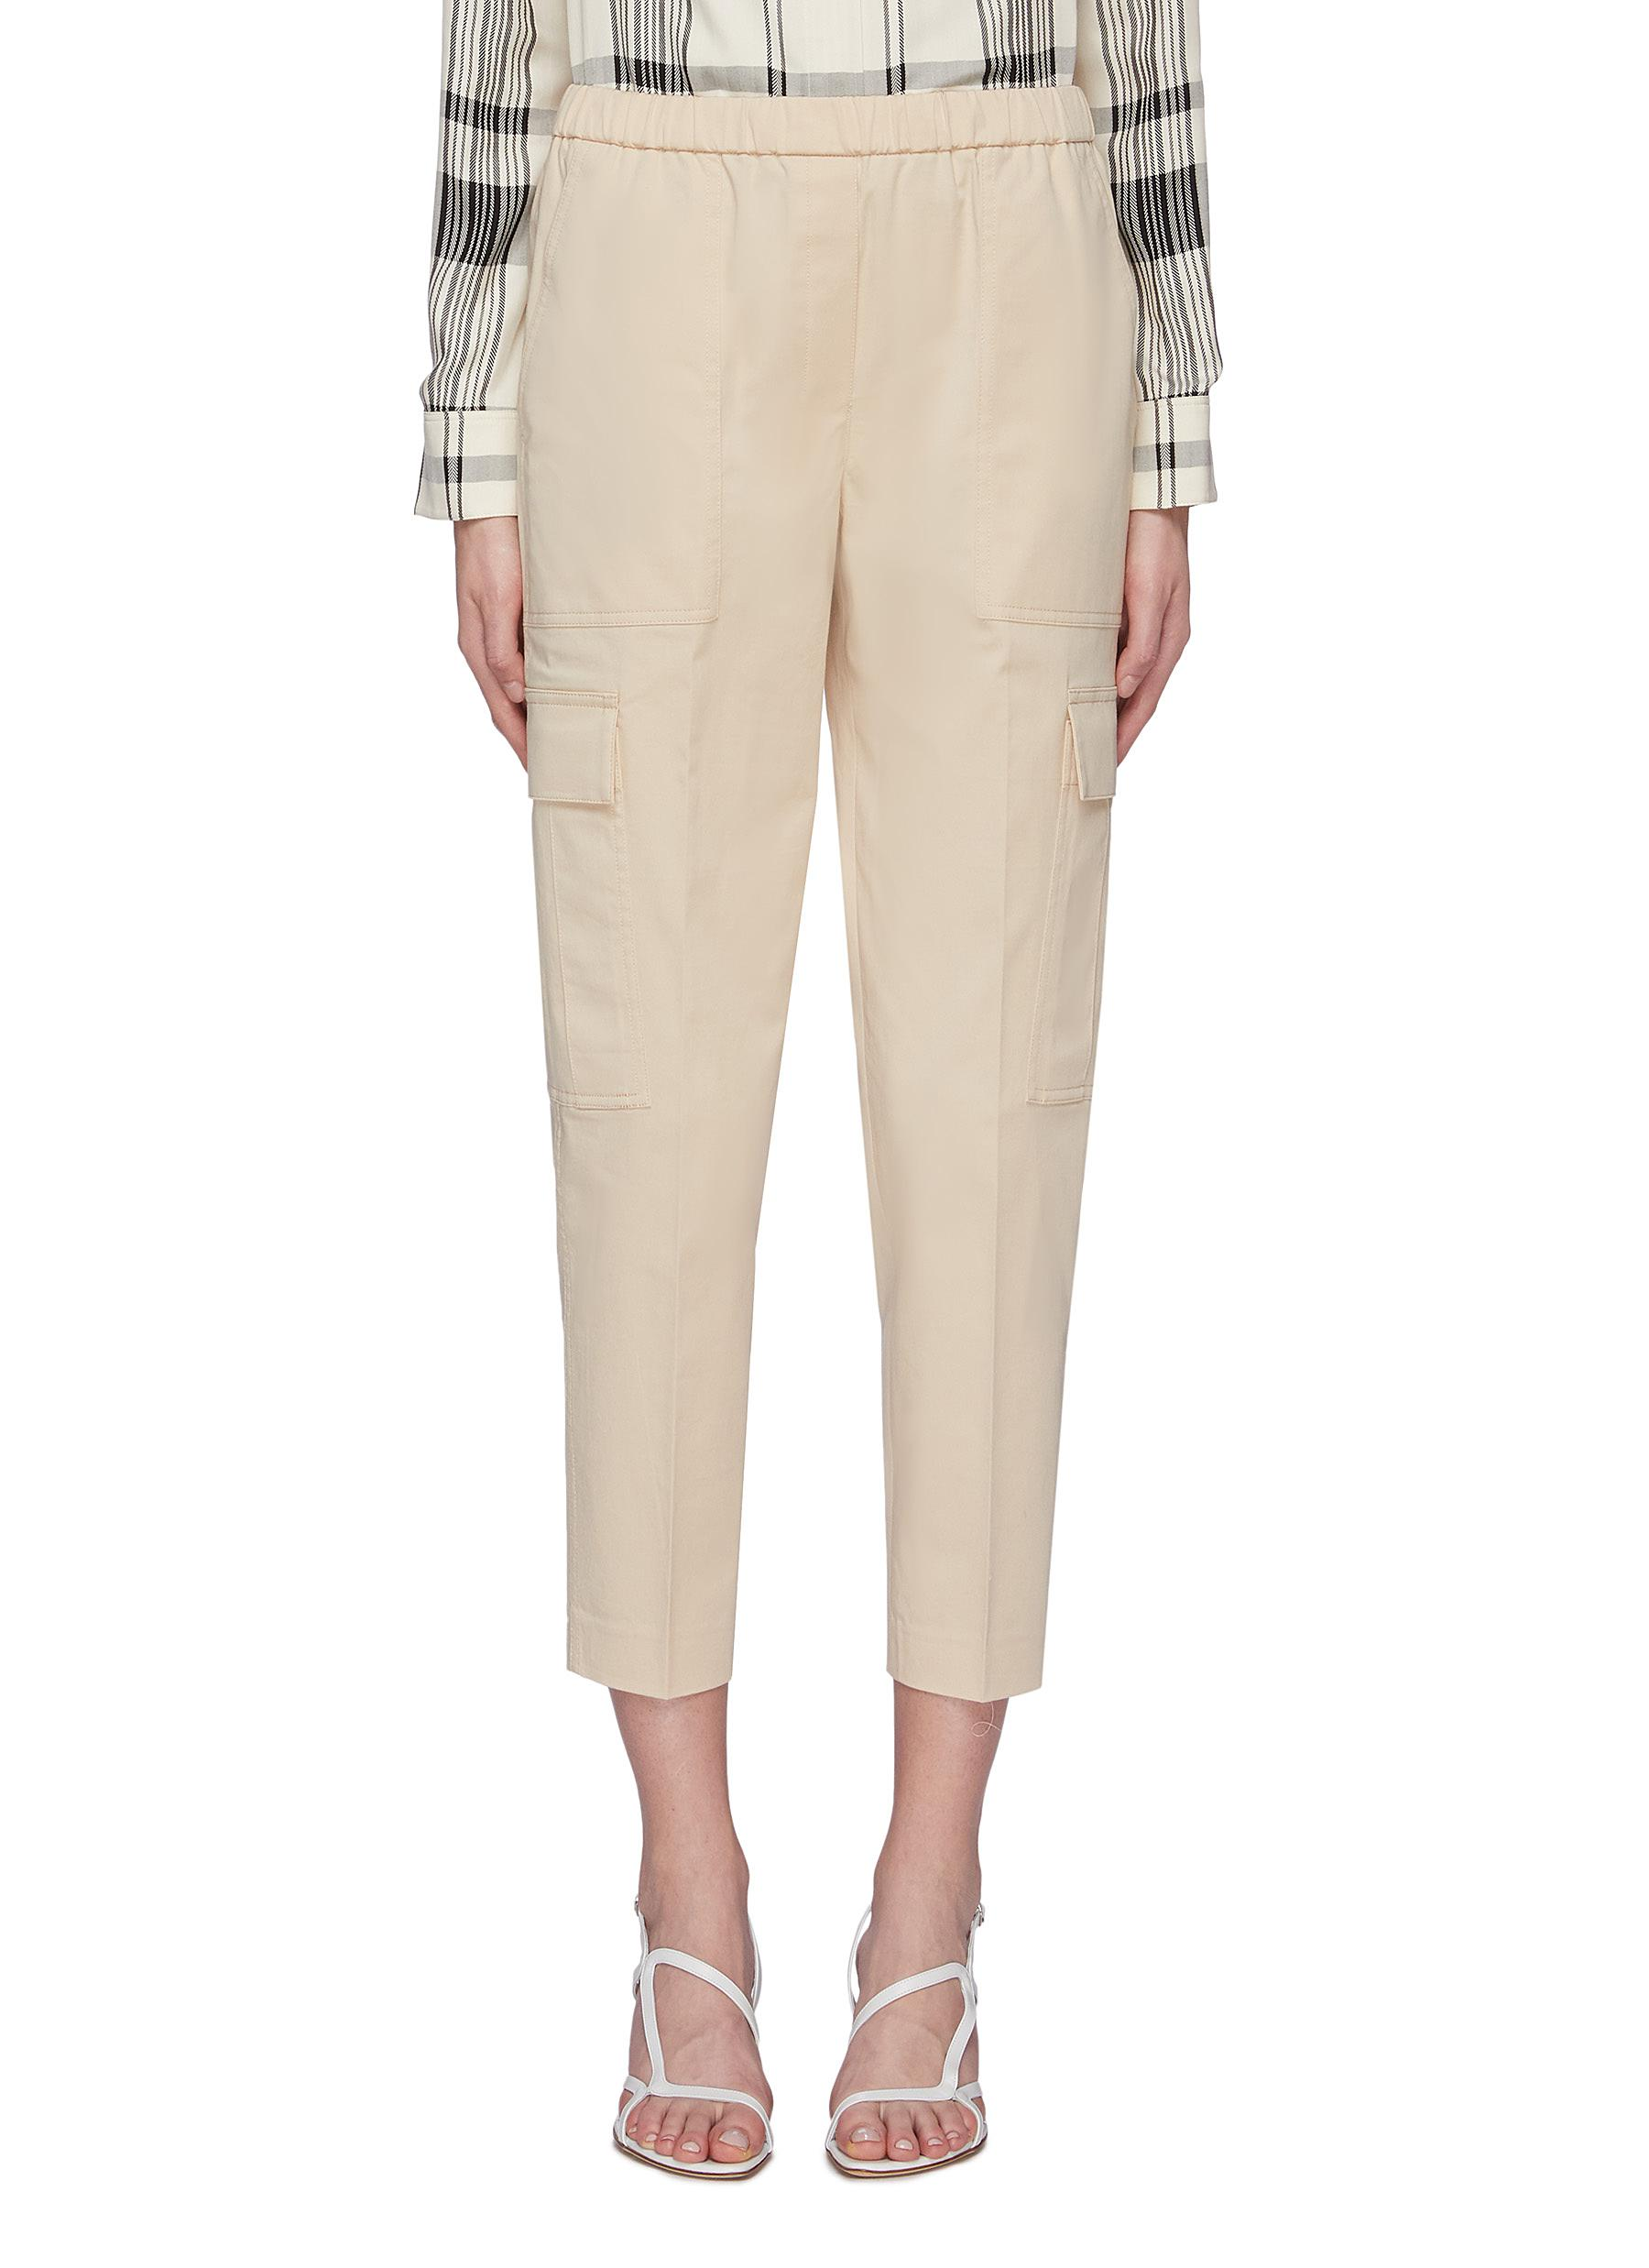 Easy cropped cargo jogging pants by Theory